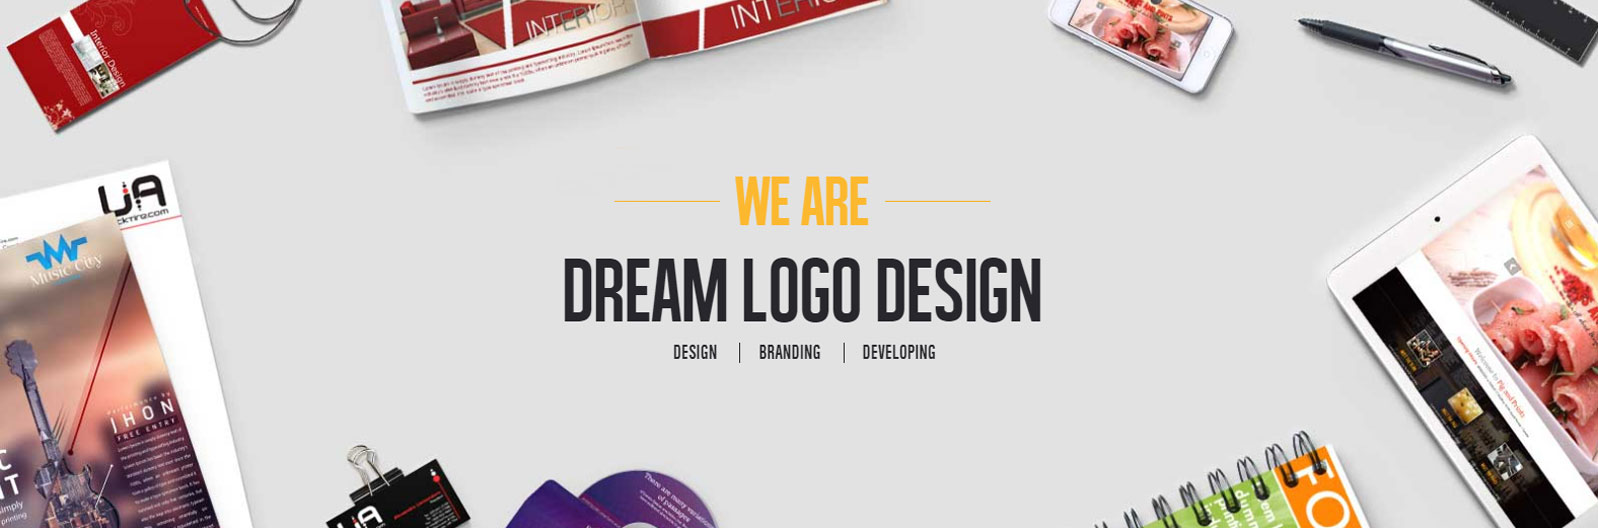 My Dance Entertainment Logo Design – DreamLogoDesign